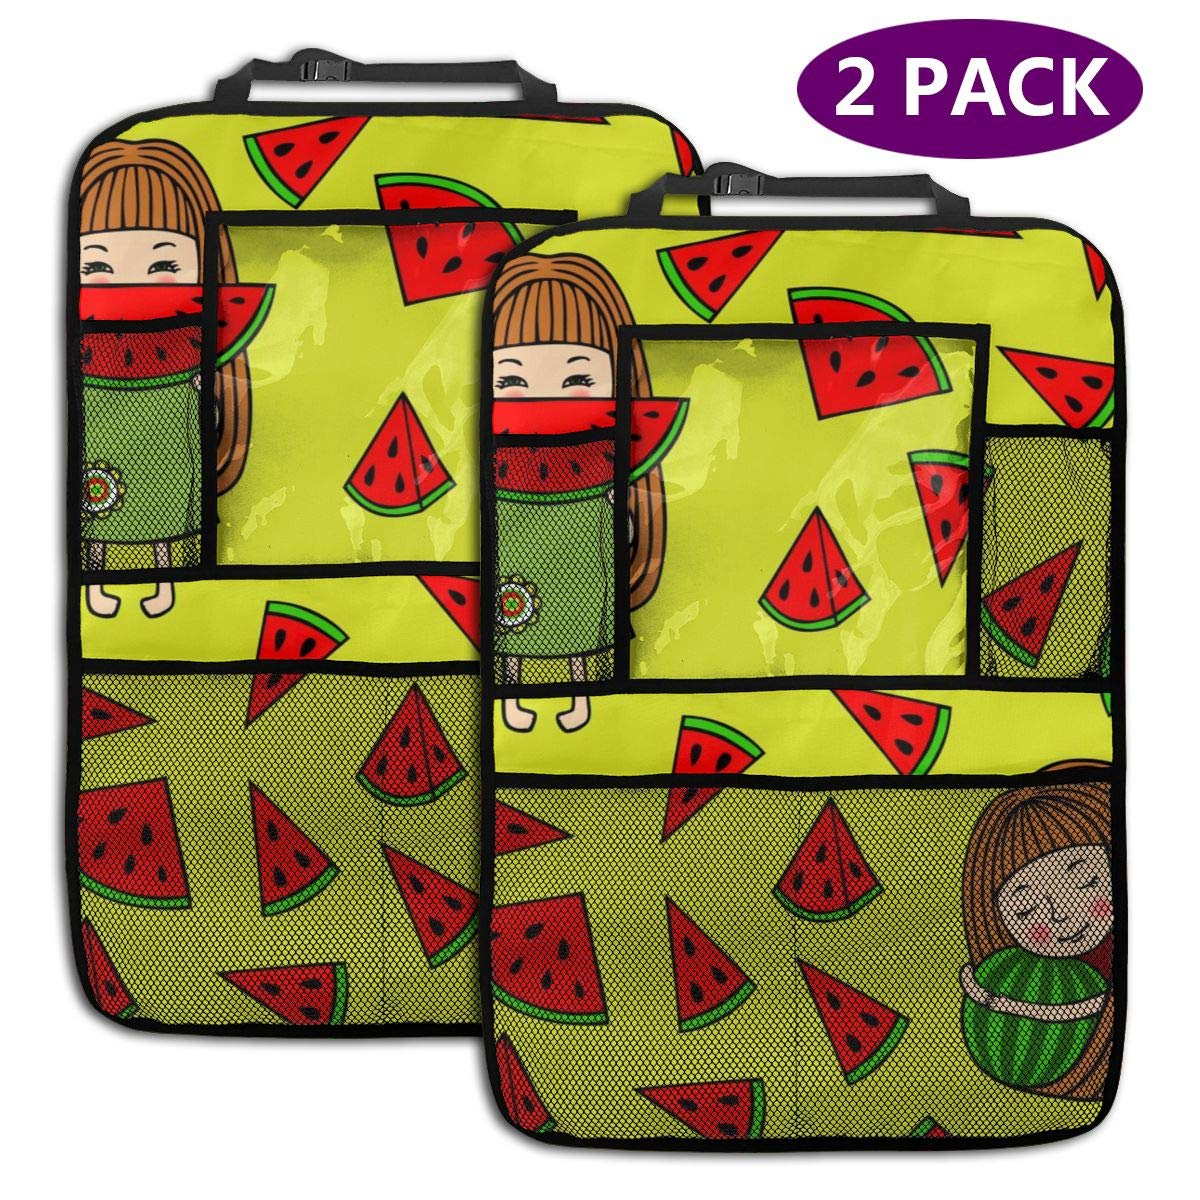 Girl Eating Watermelon 2 Pack Car Seat Organizer Kick Mat Protector Durable Quality Seat Covers Protectors by LZQEEN